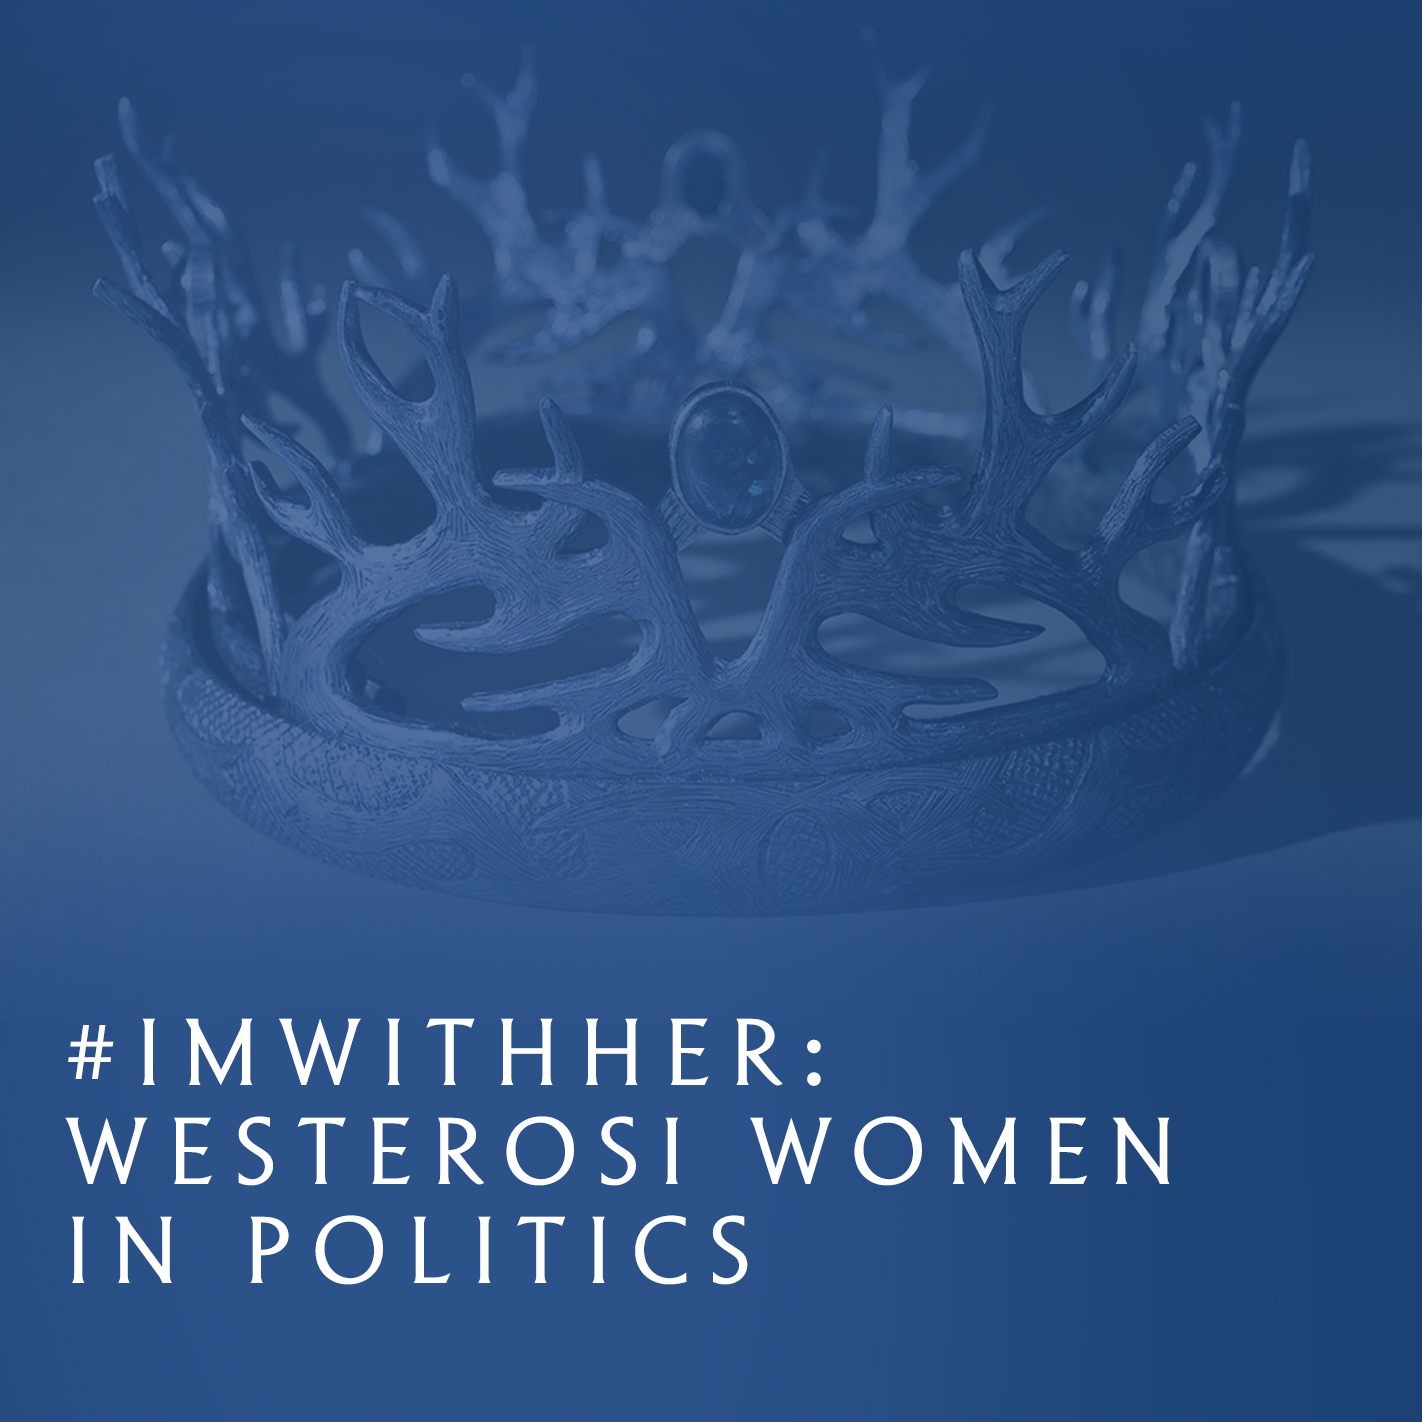 A continuation of last year's Queendom of Thrones panel, this year's discussion will focus on the political upbringings of the major female characters of the show. How were the women of the show brought up to adhere to different expected norms within Westeros, Essos, and Beyond the Wall? In what ways did this result in either devastation, in the case of Sansa, or an overcoming of obstacles, albeit through bloody means, like Daenerys and Cersei? Or are they more successful when they buck gender norms, like Arya and Brienne? Cast your vote!